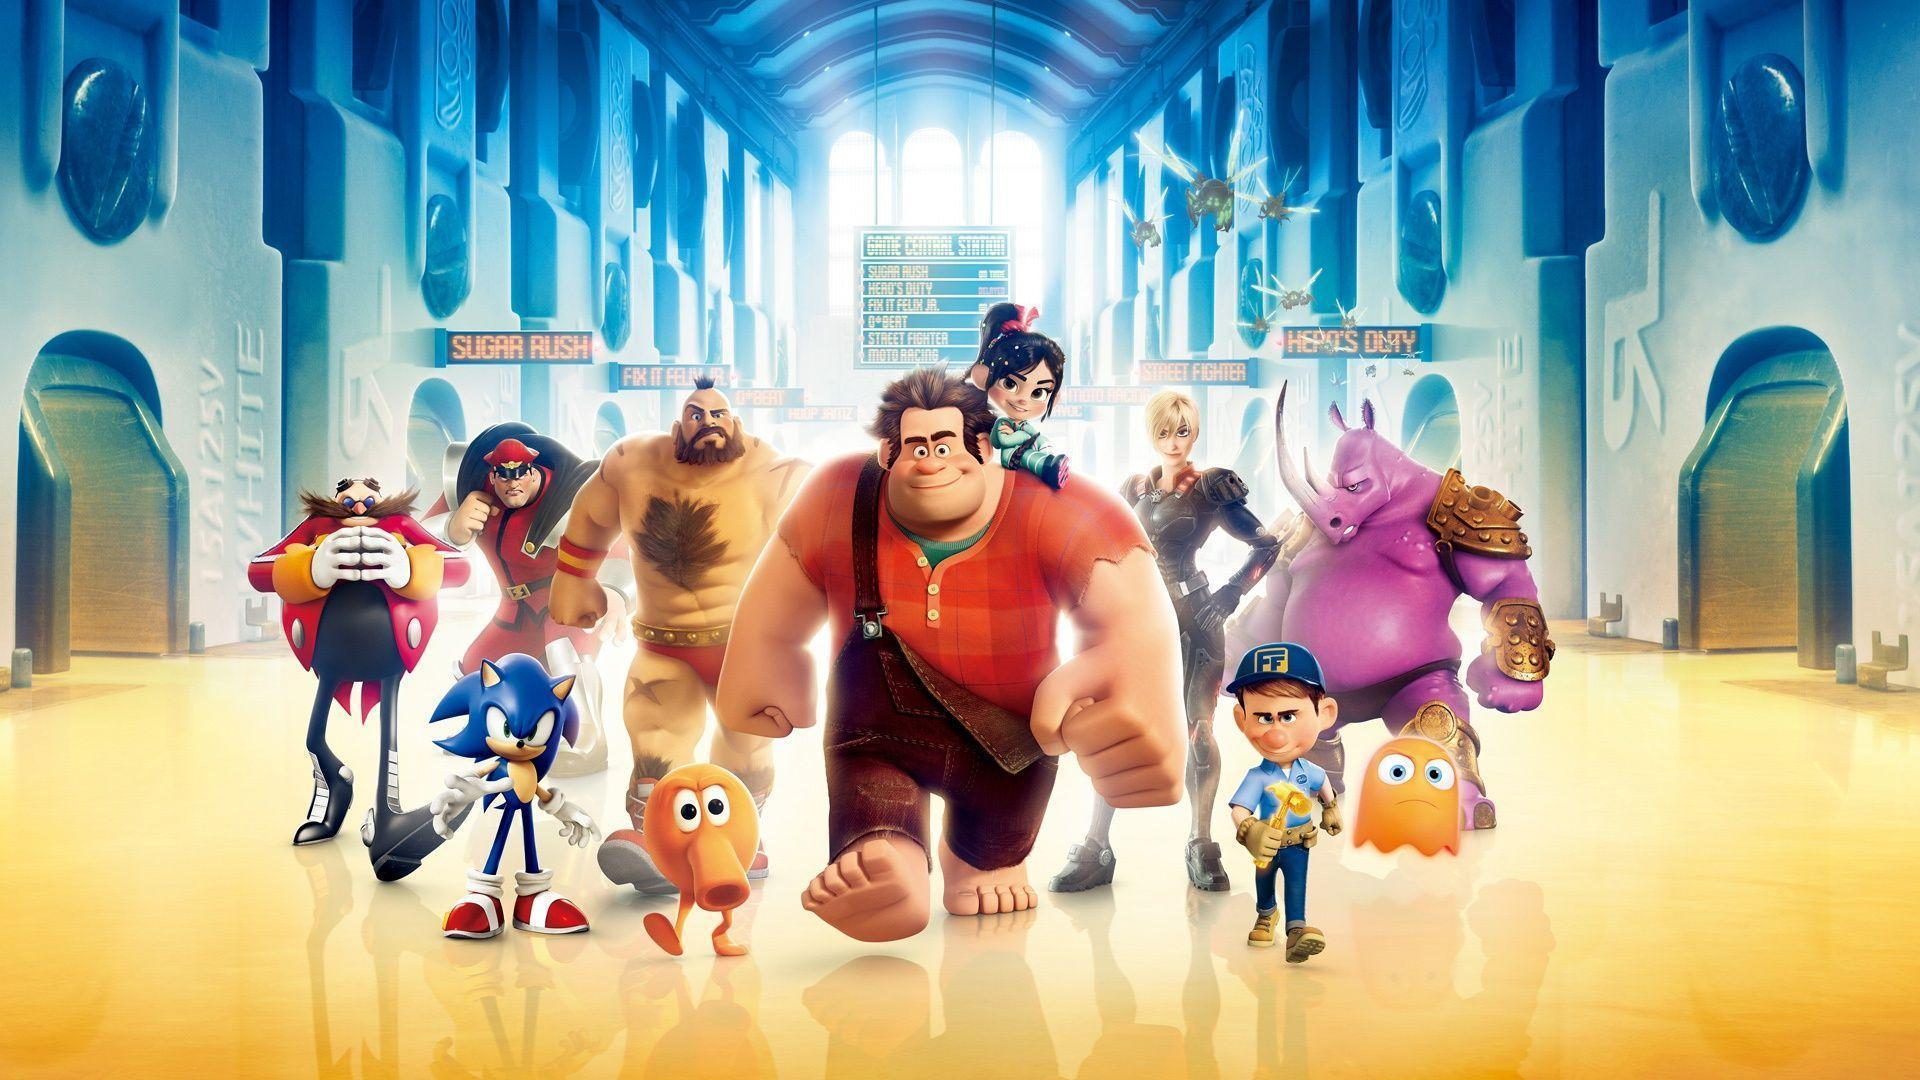 Wreck It Ralph Wallpapers Top Free Wreck It Ralph Backgrounds